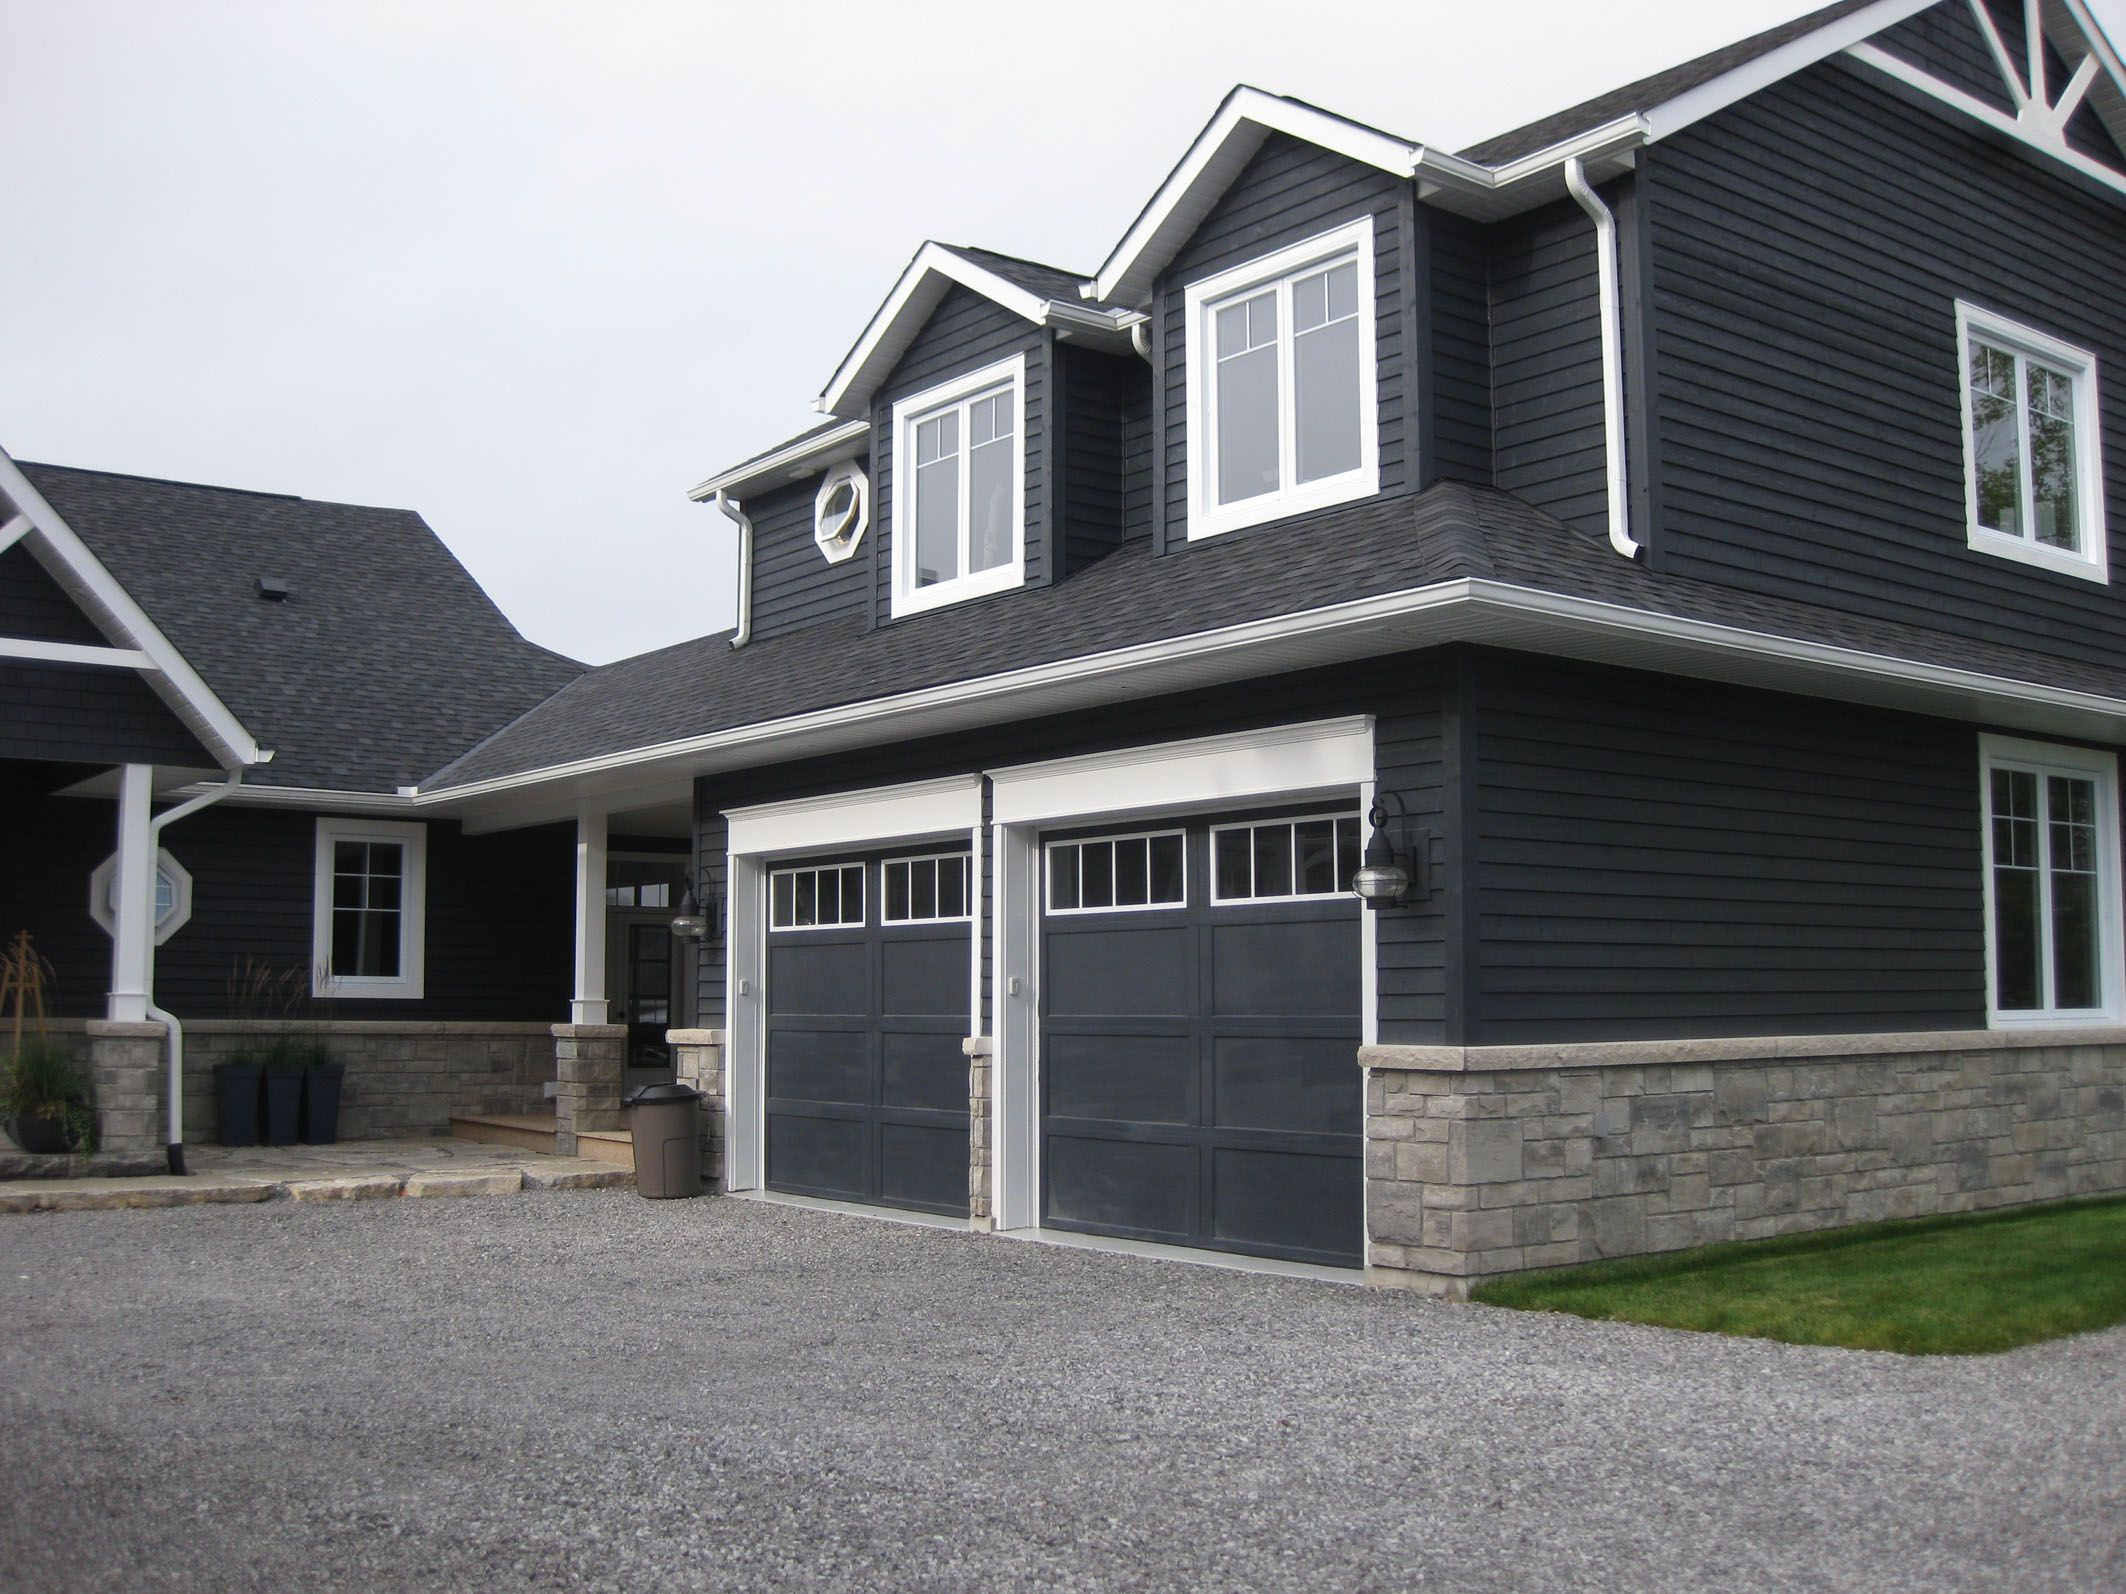 Dark grey house exterior google search house exterior pinterest dark gray houses grey - Dark grey exterior house paint concept ...